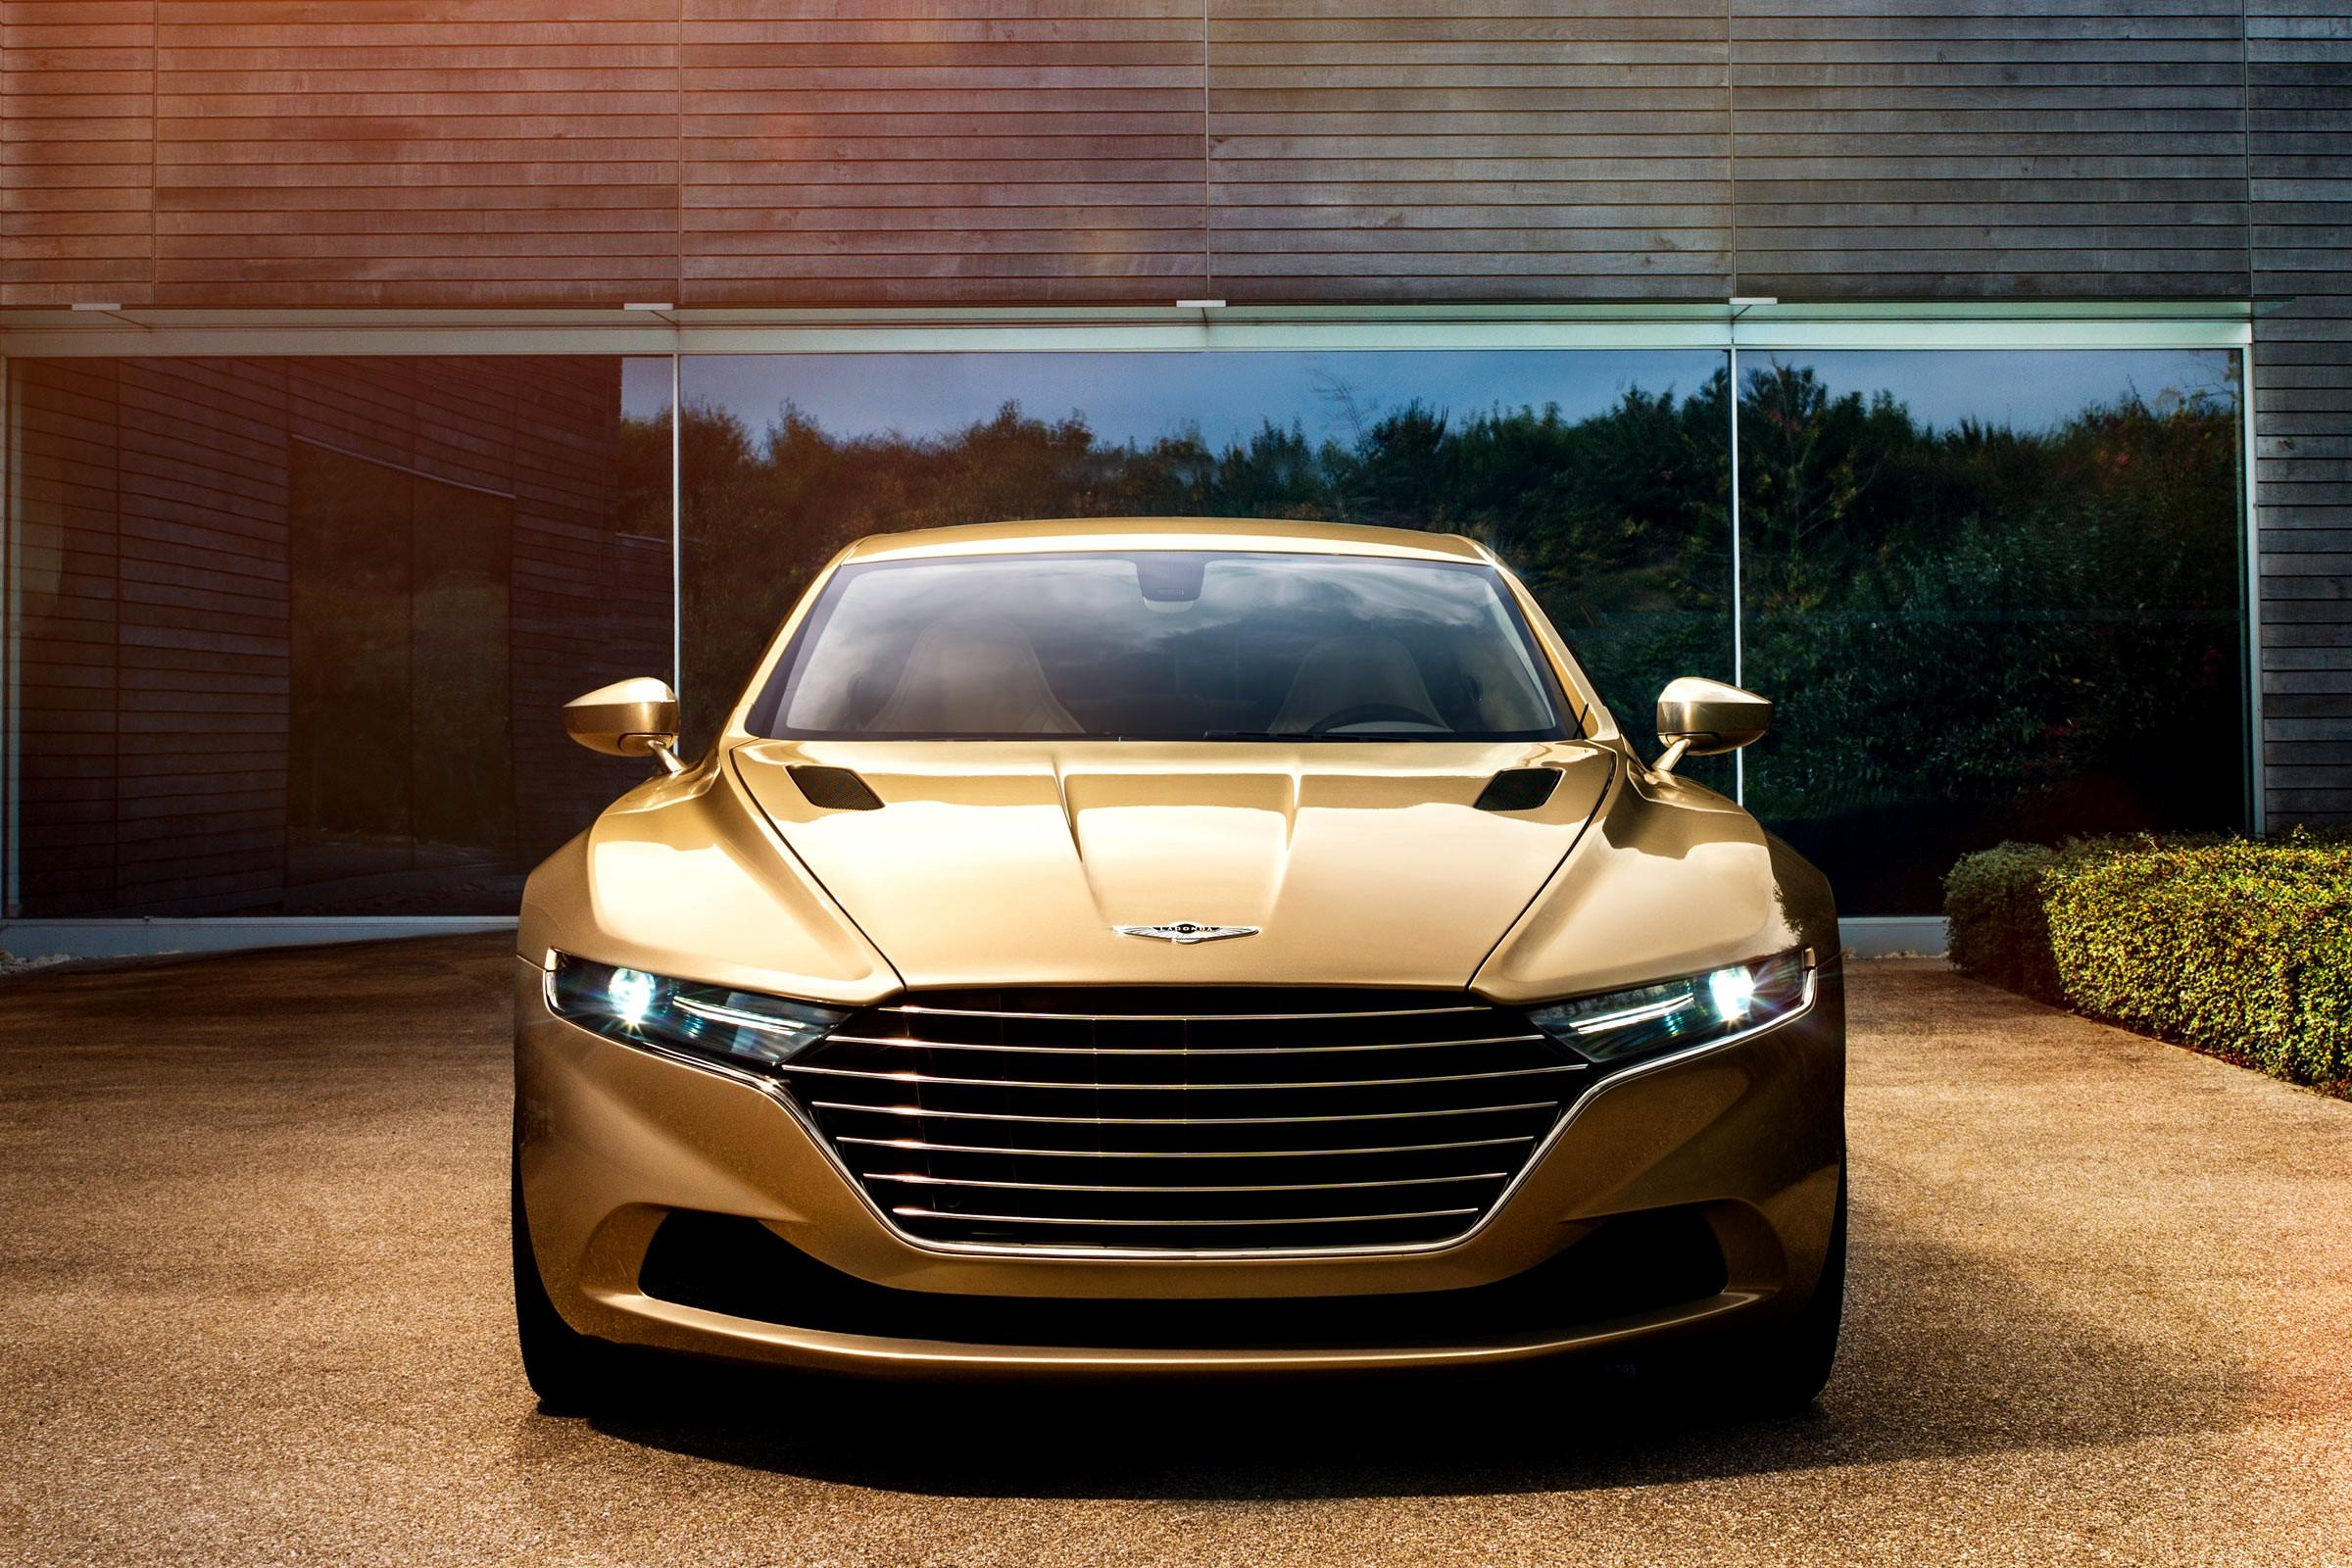 Aston Martin Lagonda HD Wallpapers